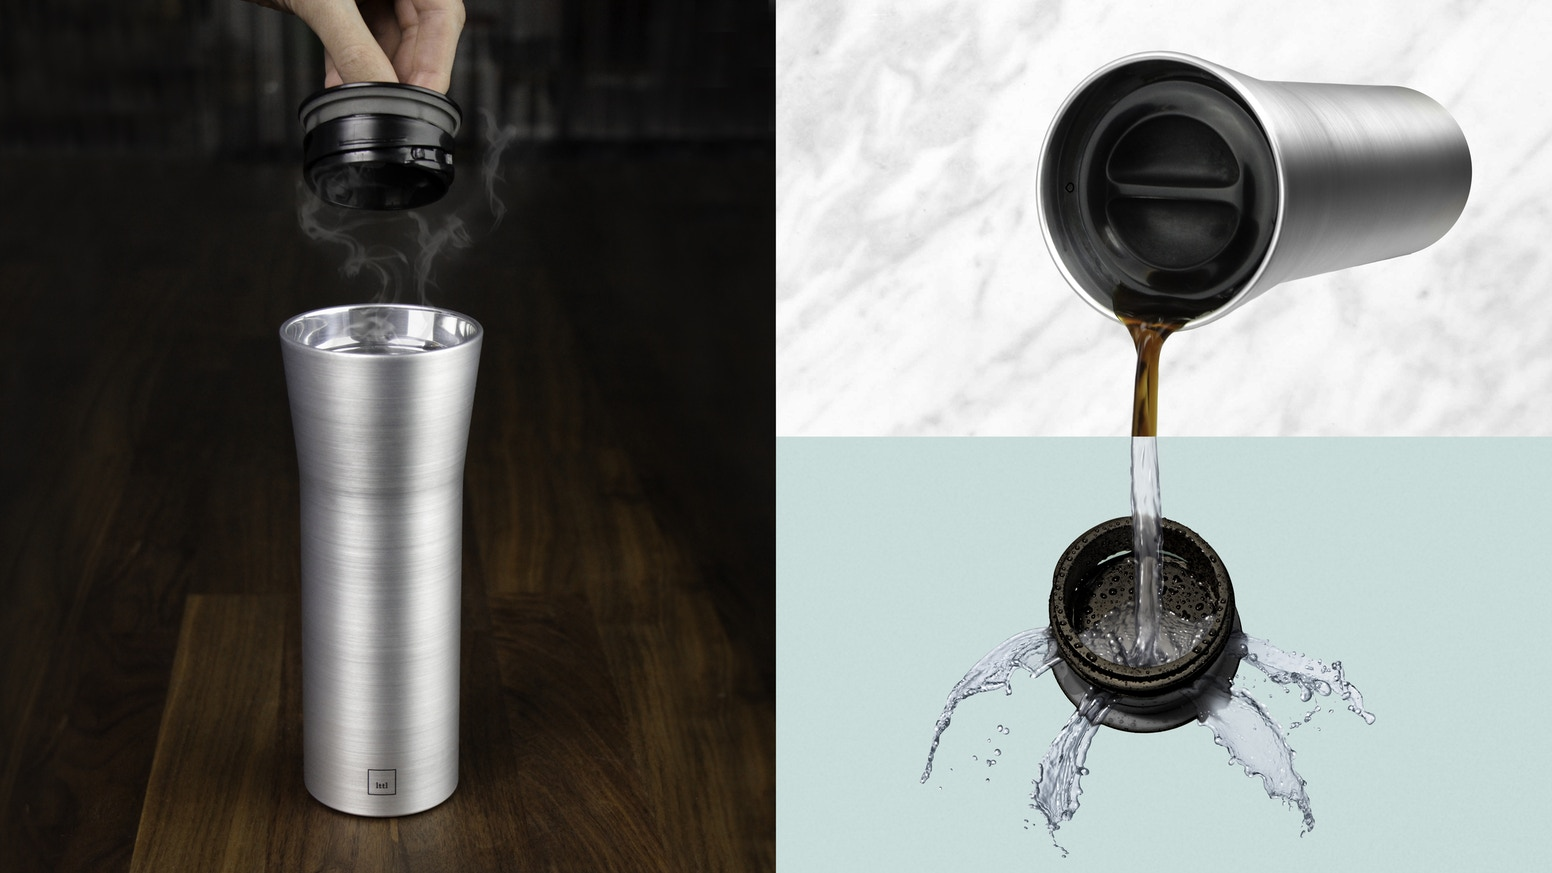 The world's first travel mug with authentic cup-like sipping and truly easy cleaning. Keeps drinks hot or cold for hours without leaks.